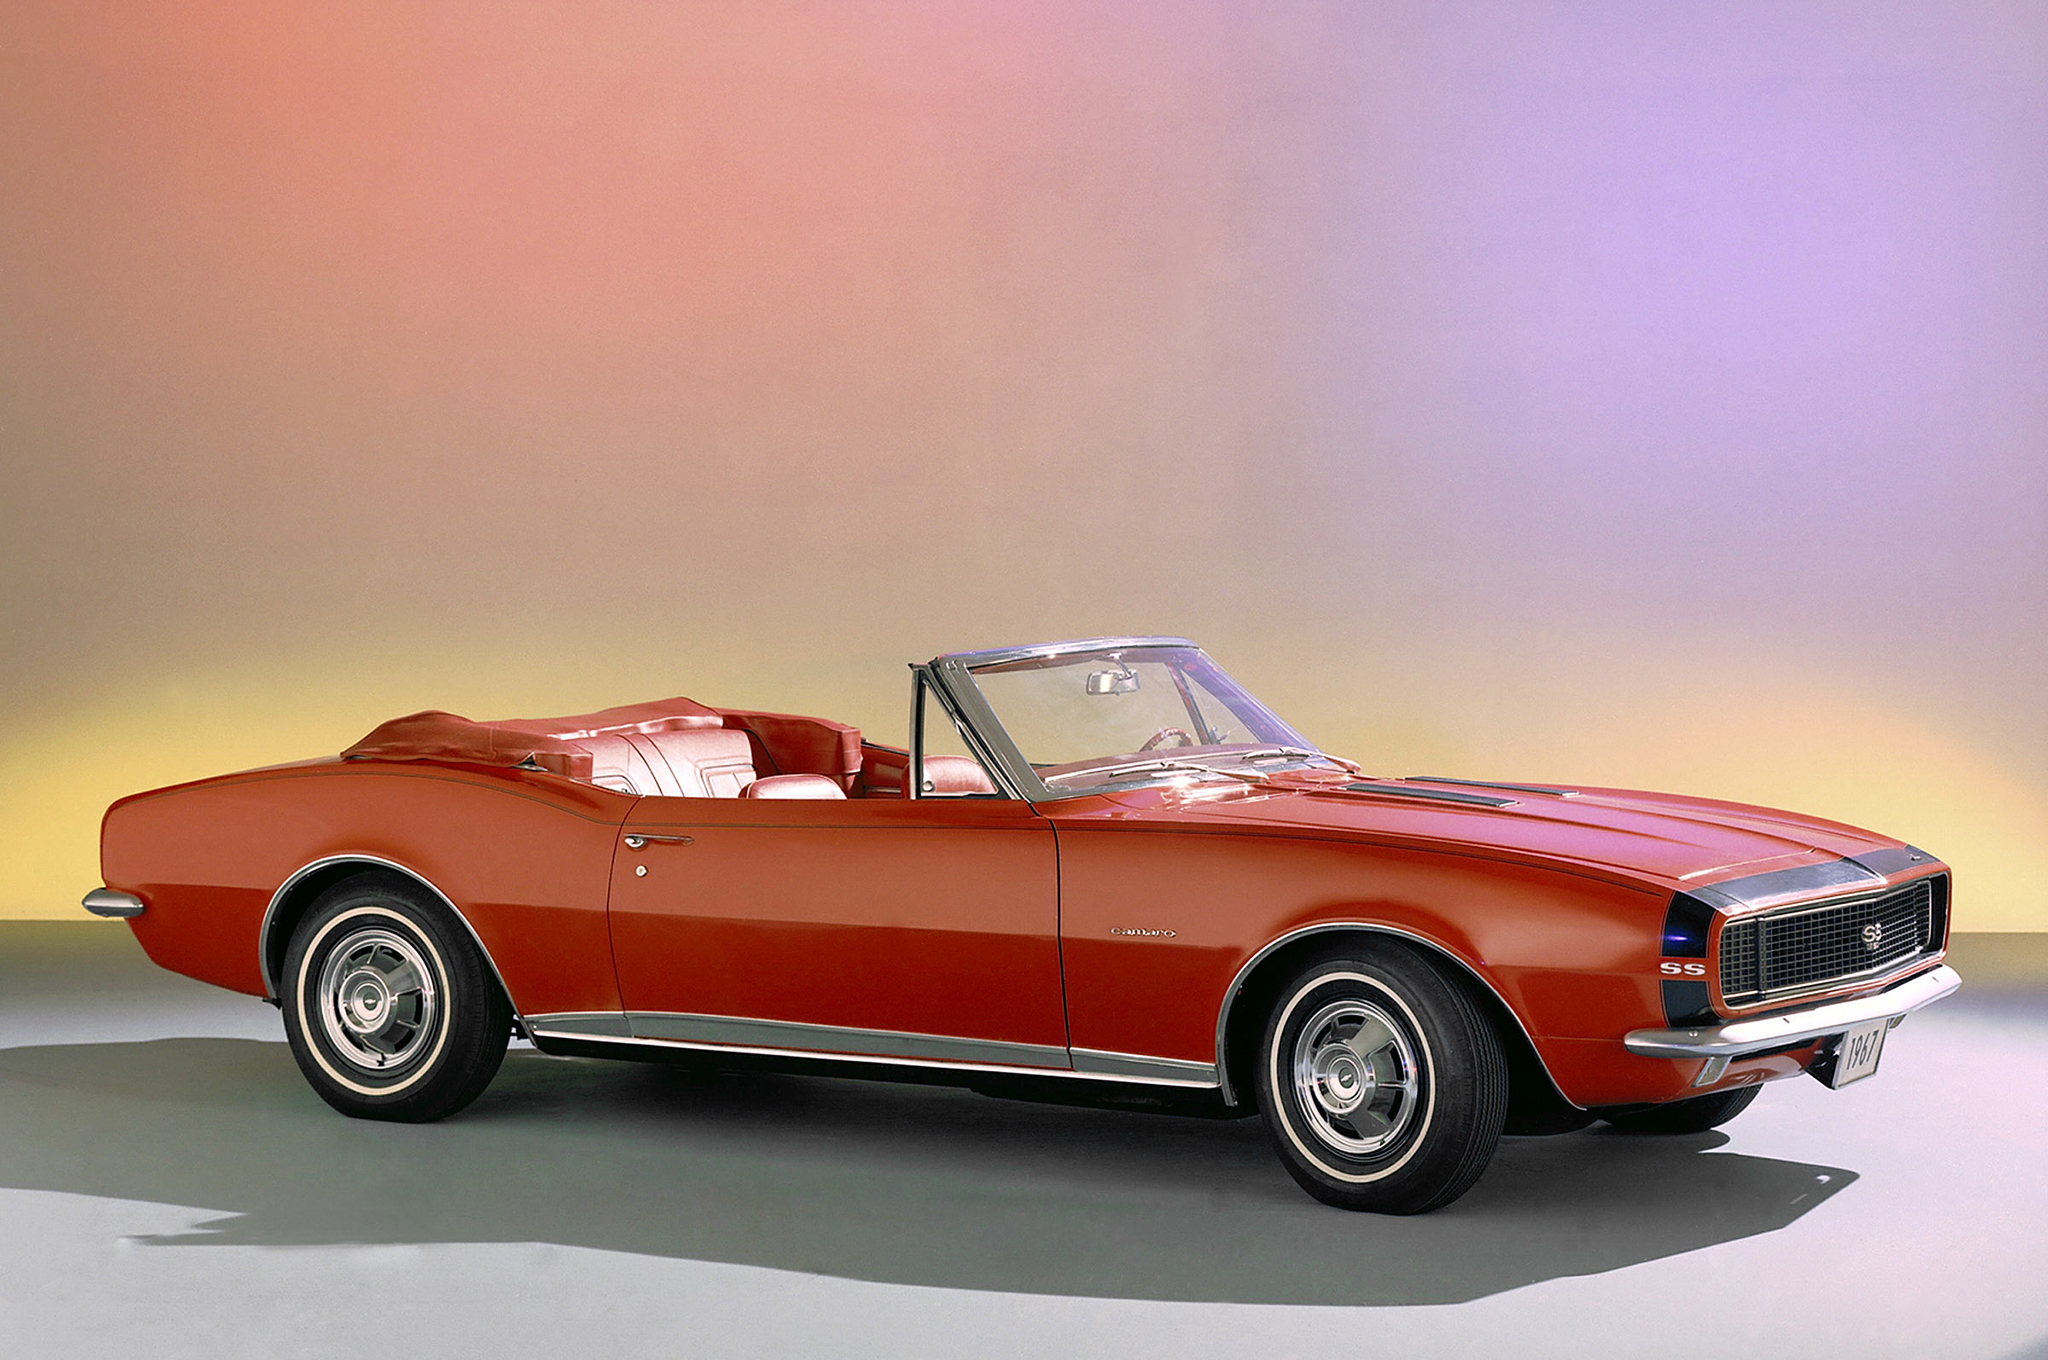 """The Camaro debuted in late 1966 to enthusiastic Baby Boomers clamoring for Chevy's entry in the all-new """"ponycar"""" segment. More than 220,000 were sold in the first year."""